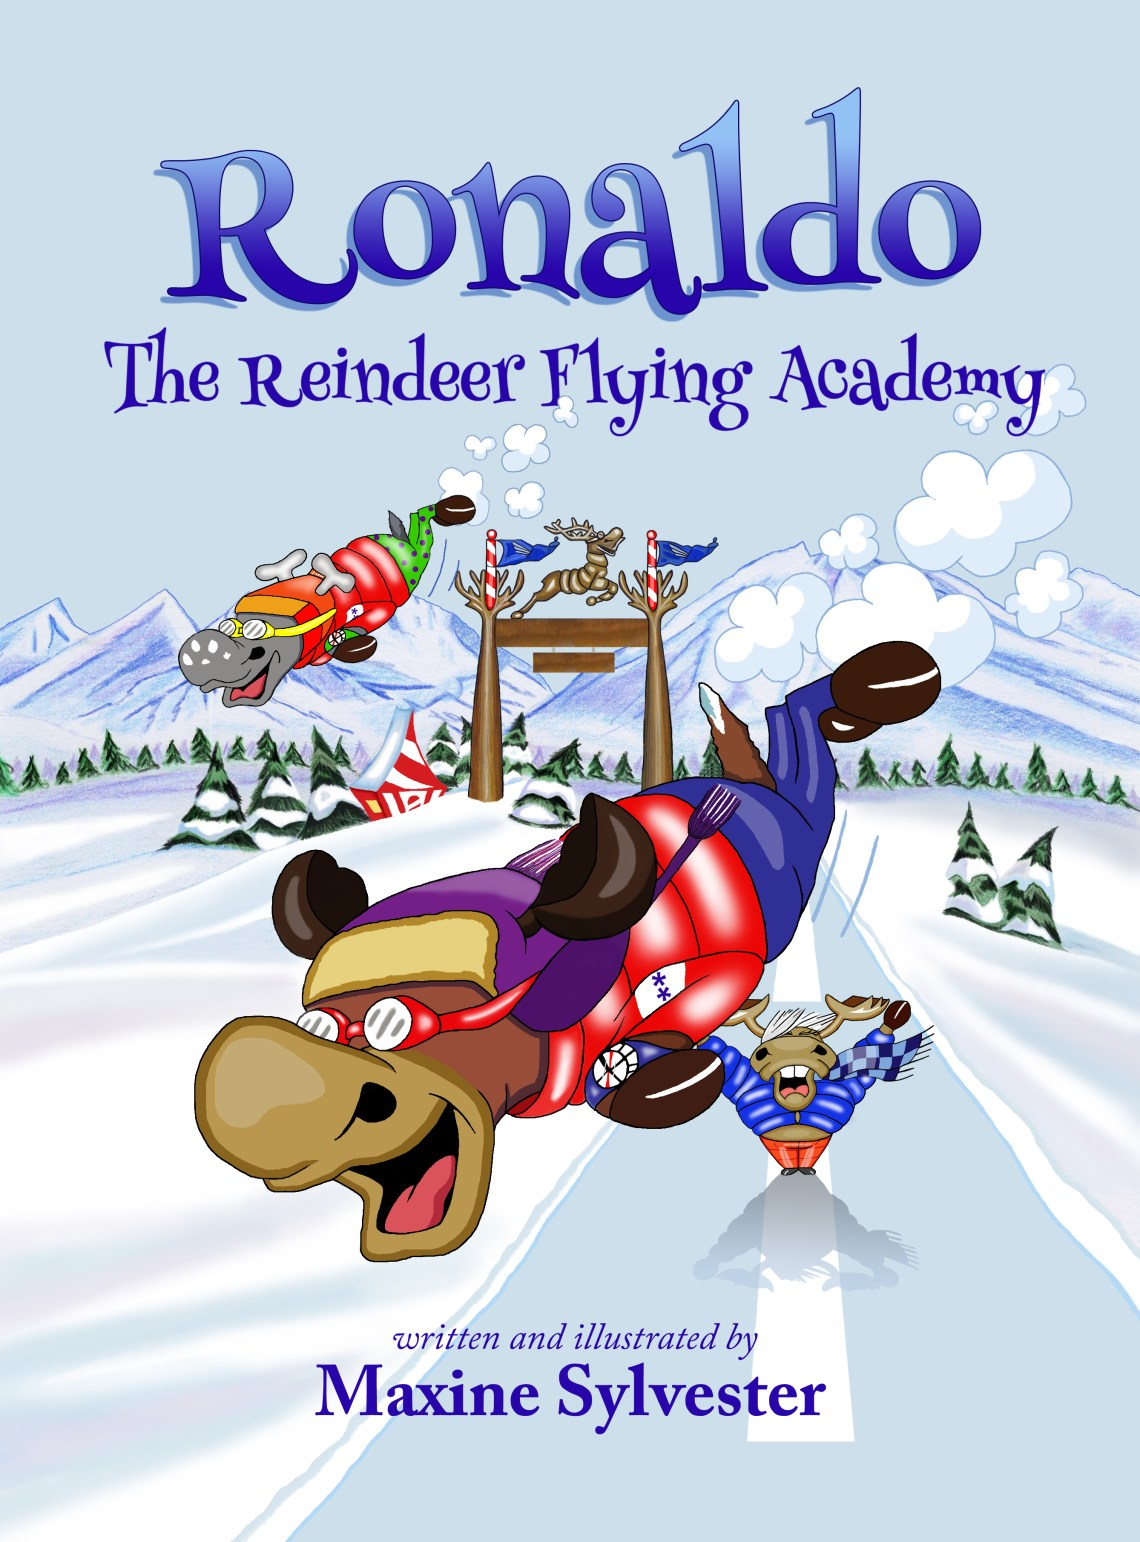 Ronaldo The Reindeer Flying Academy - Maxine Sylvester - Book Cover